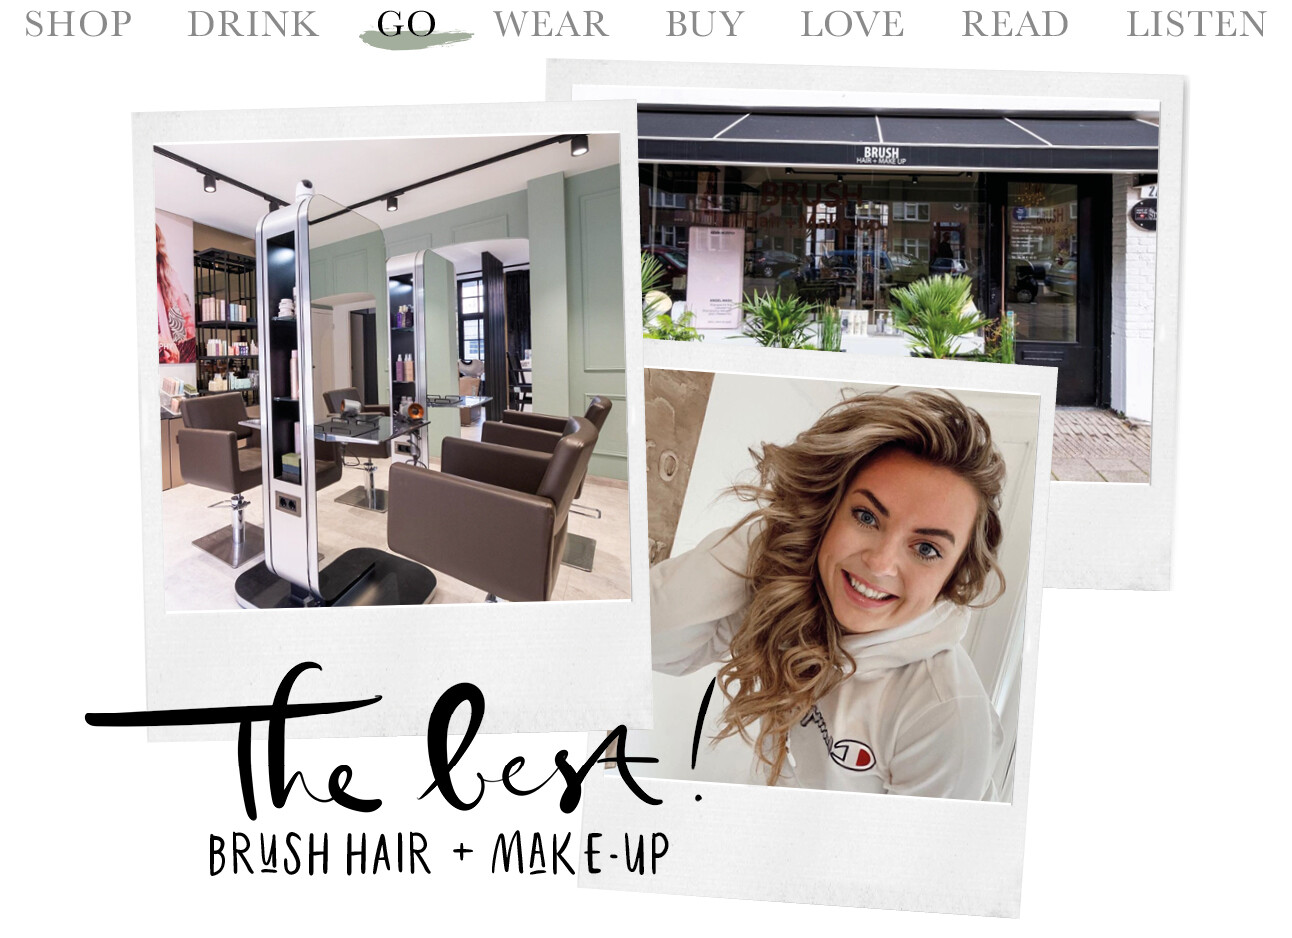 Today we go to brush hair and make-up